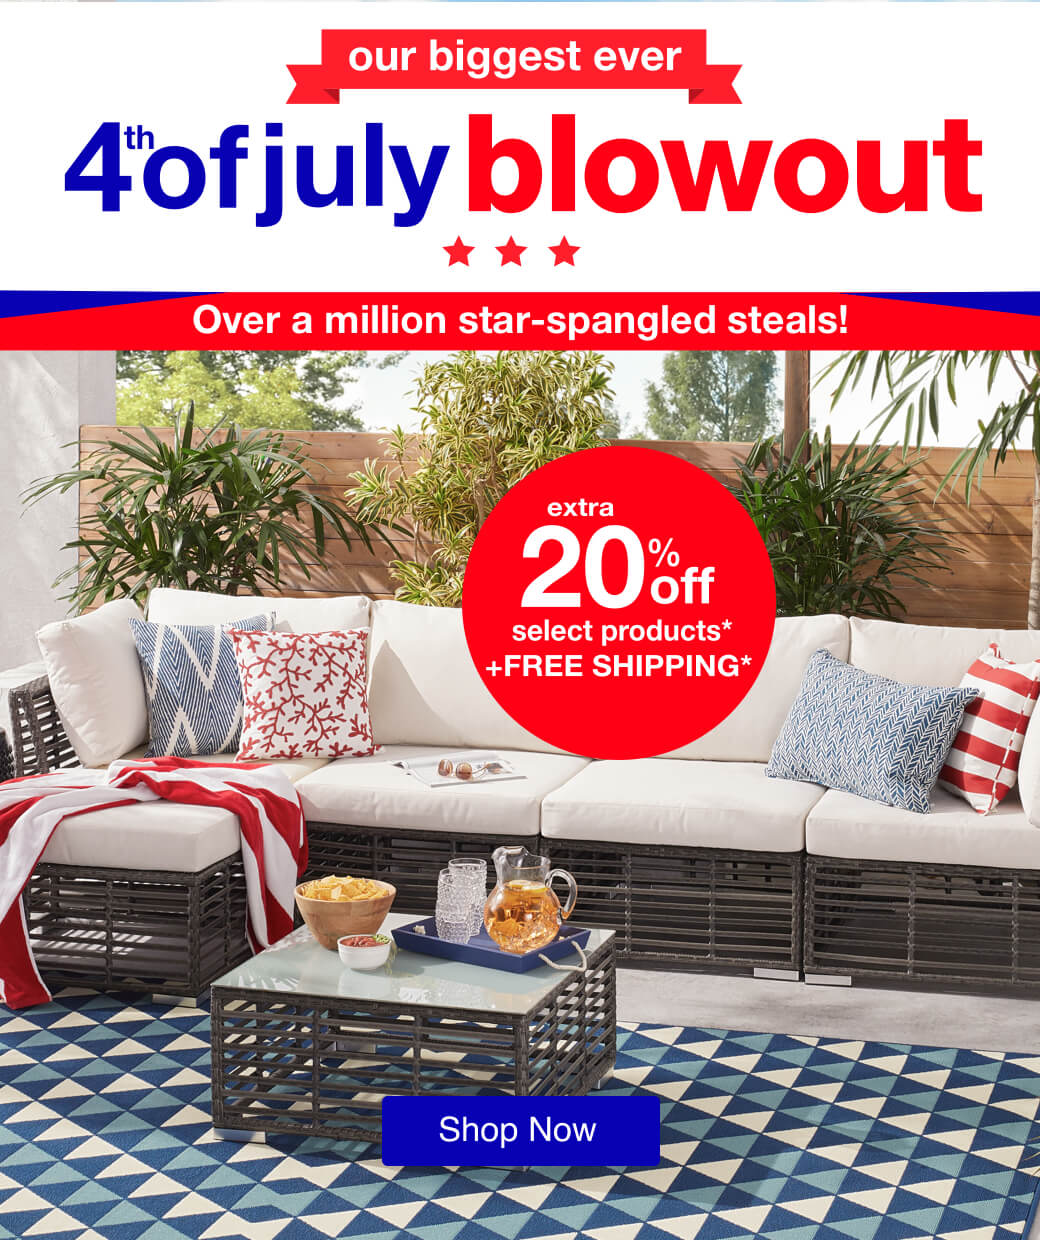 4th of July Blowout